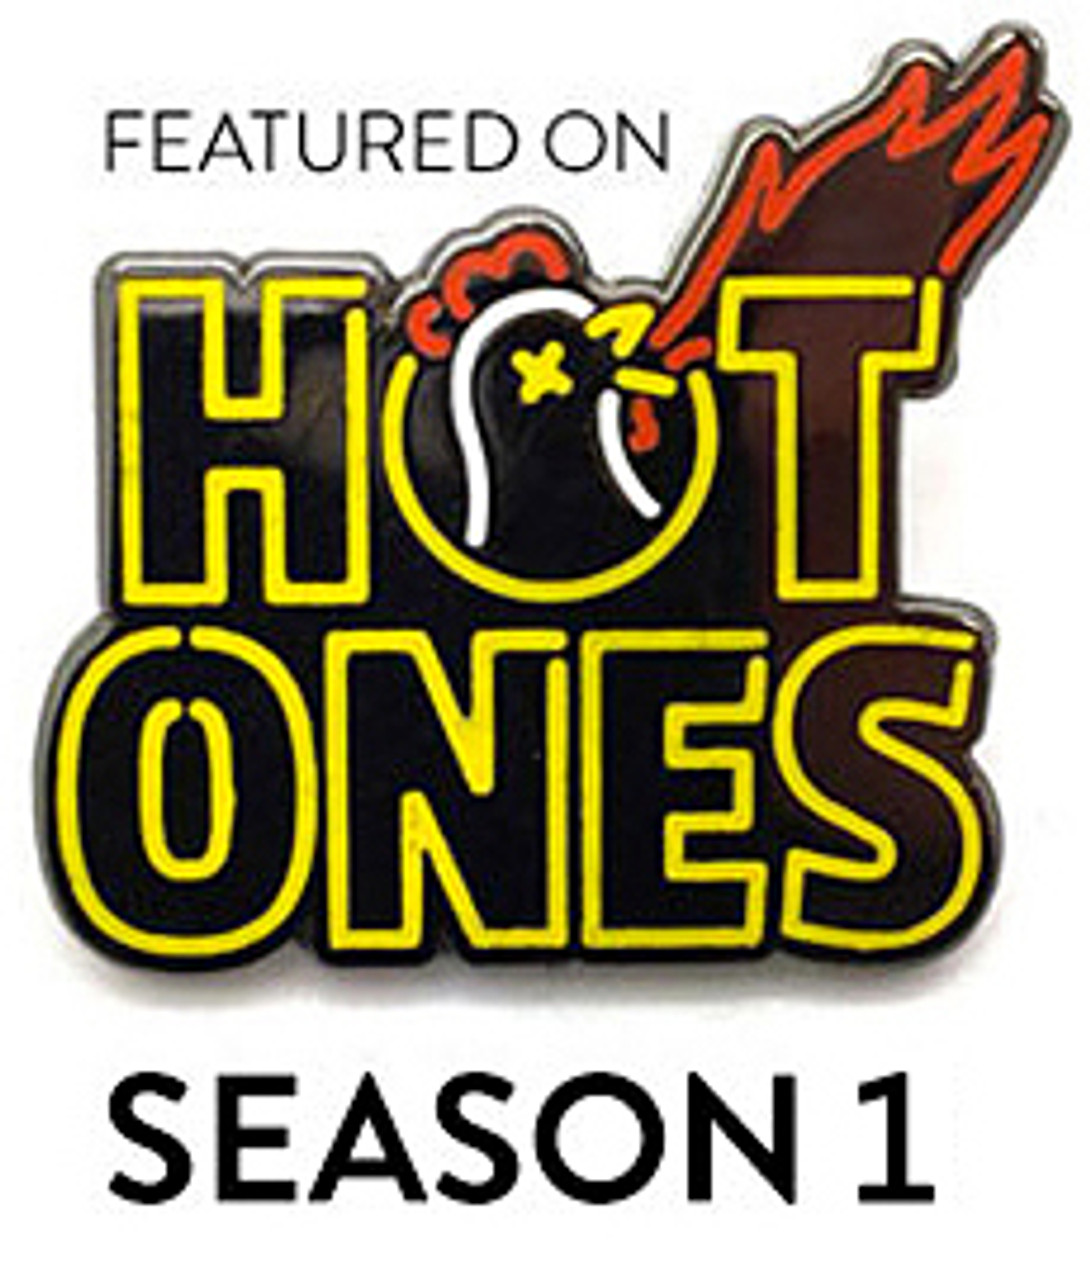 Hot Ones Hot Sauces: Season 1